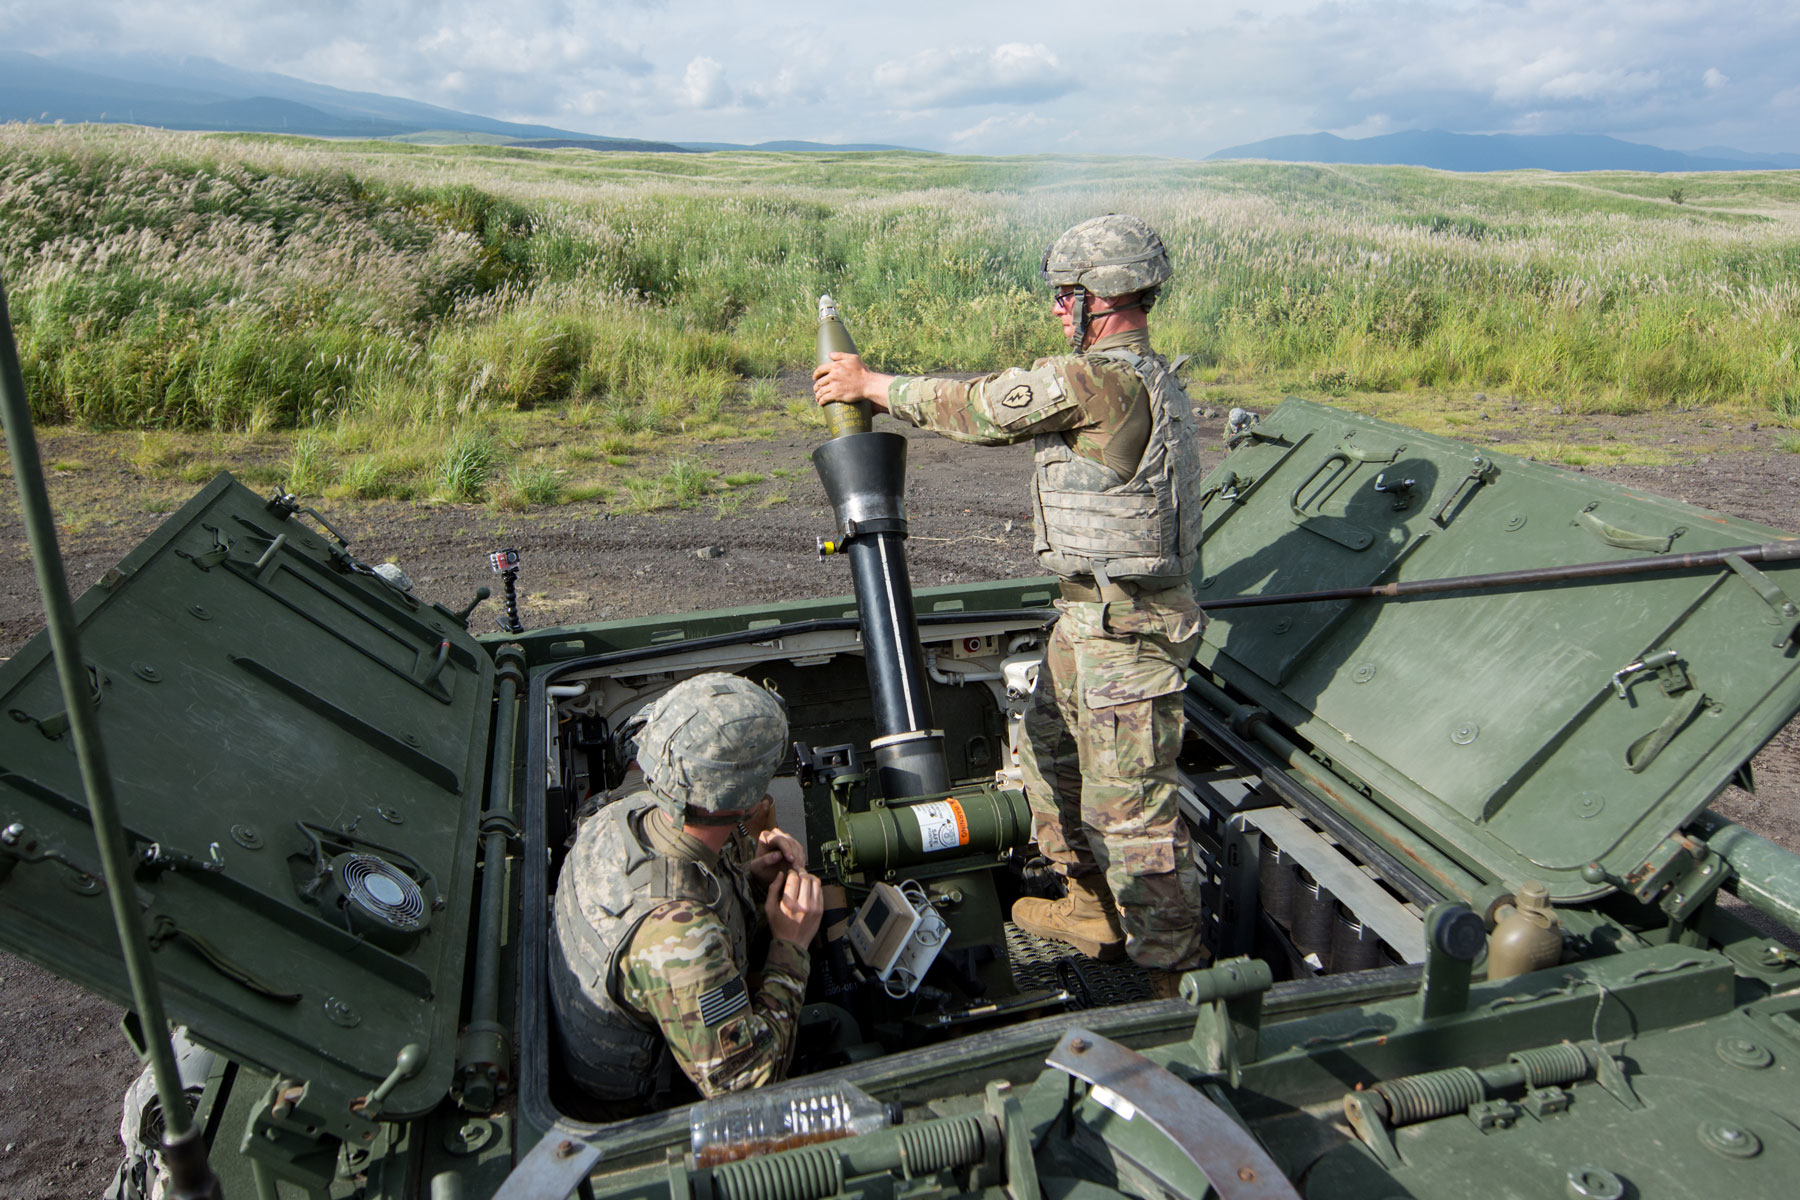 Spc. Holden Rogers, assigned to Headquarters, Headquarters Company, 3rd Battalion, 21st Infantry Regiment, 1st Stryker Brigade Combat Team, 25th Infantry Division, loads ordnance into a RMS6L 120mm mortar system on a M1129 Mortar Carrier as part of exercise Orient Shield 2017 at Camp Fuji, Japan.